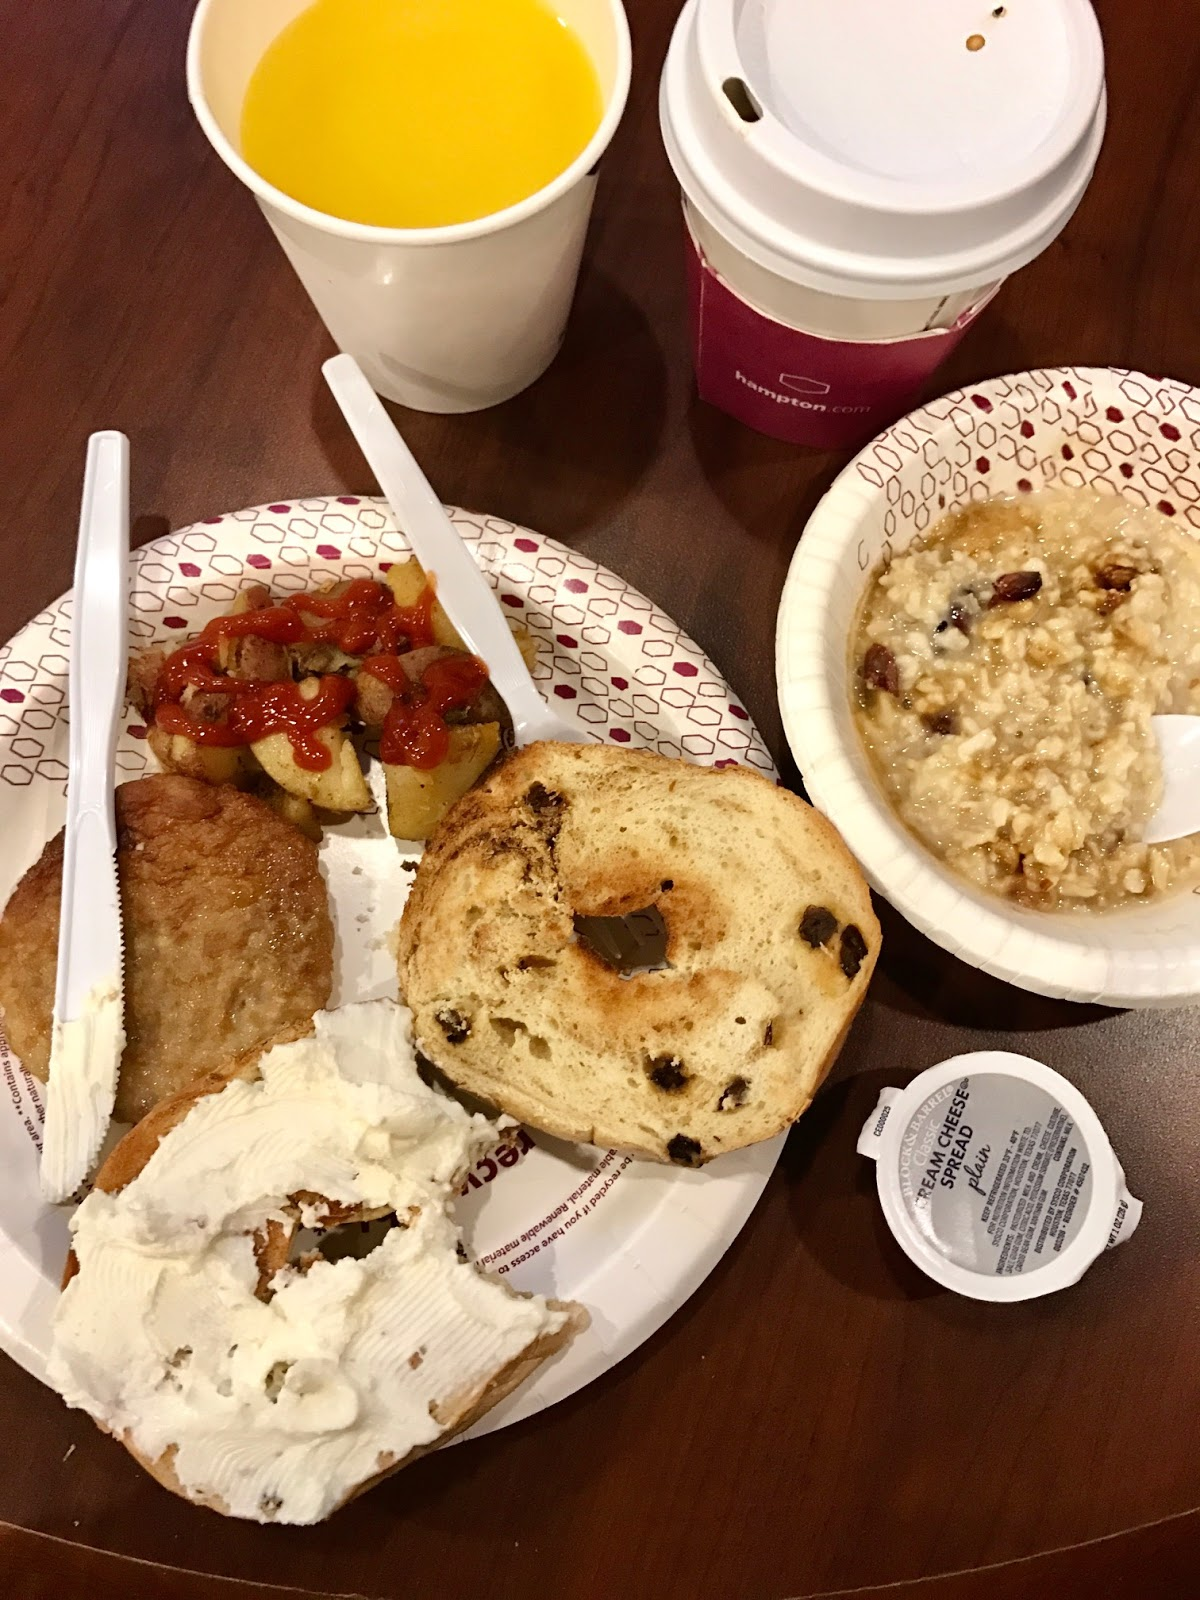 continental breakfast including oatmeal, bagel with cream cheese, sausage and orange juice.